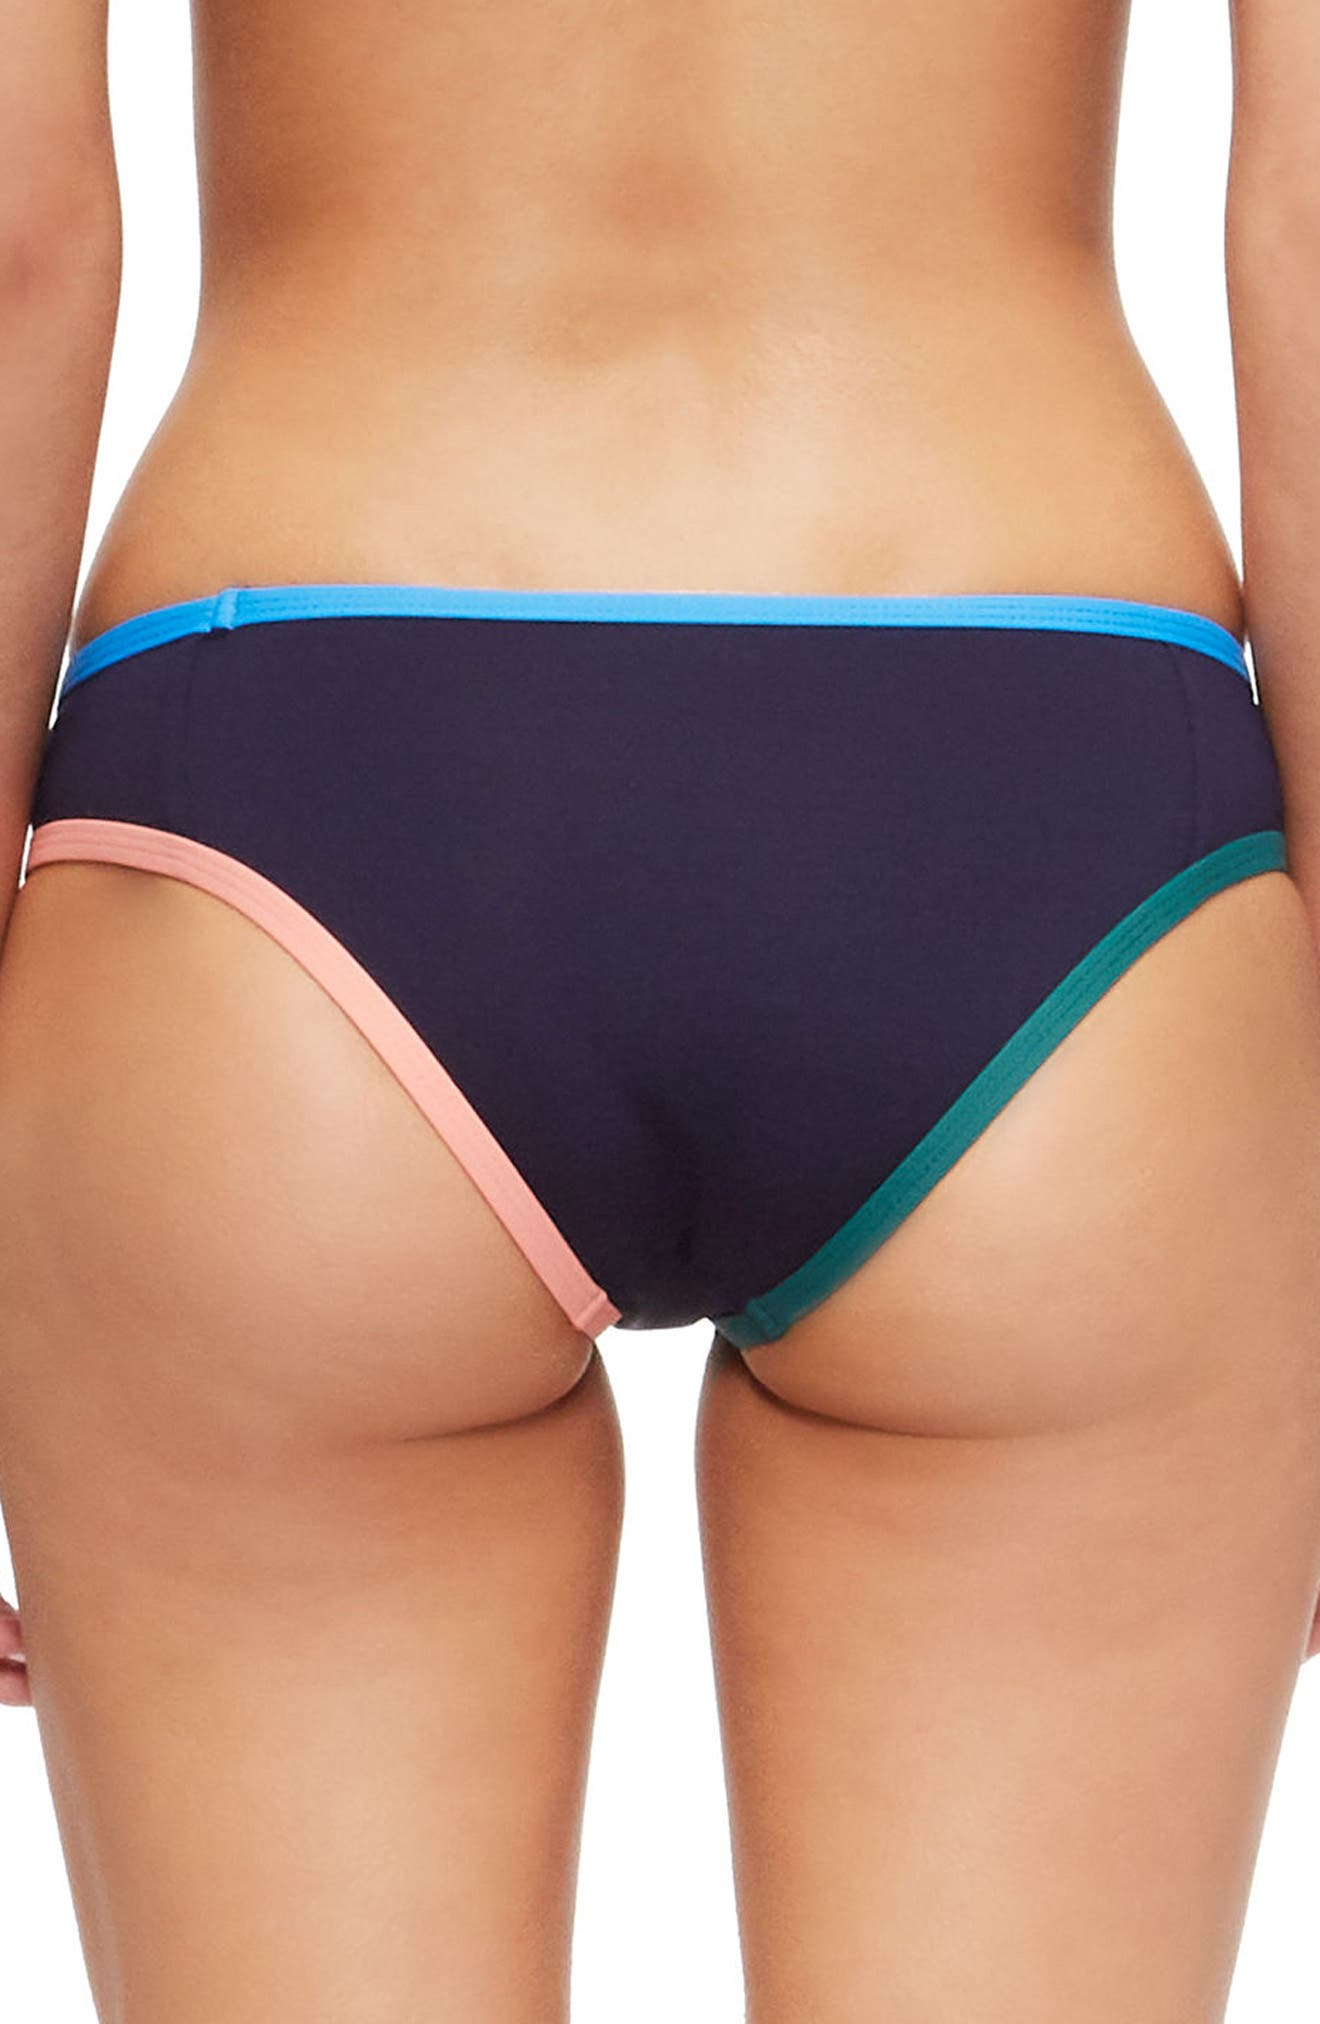 Jayden Bikini Bottoms,                             Alternate thumbnail 2, color,                             EVENING BLUE/ FRENCH BLUE